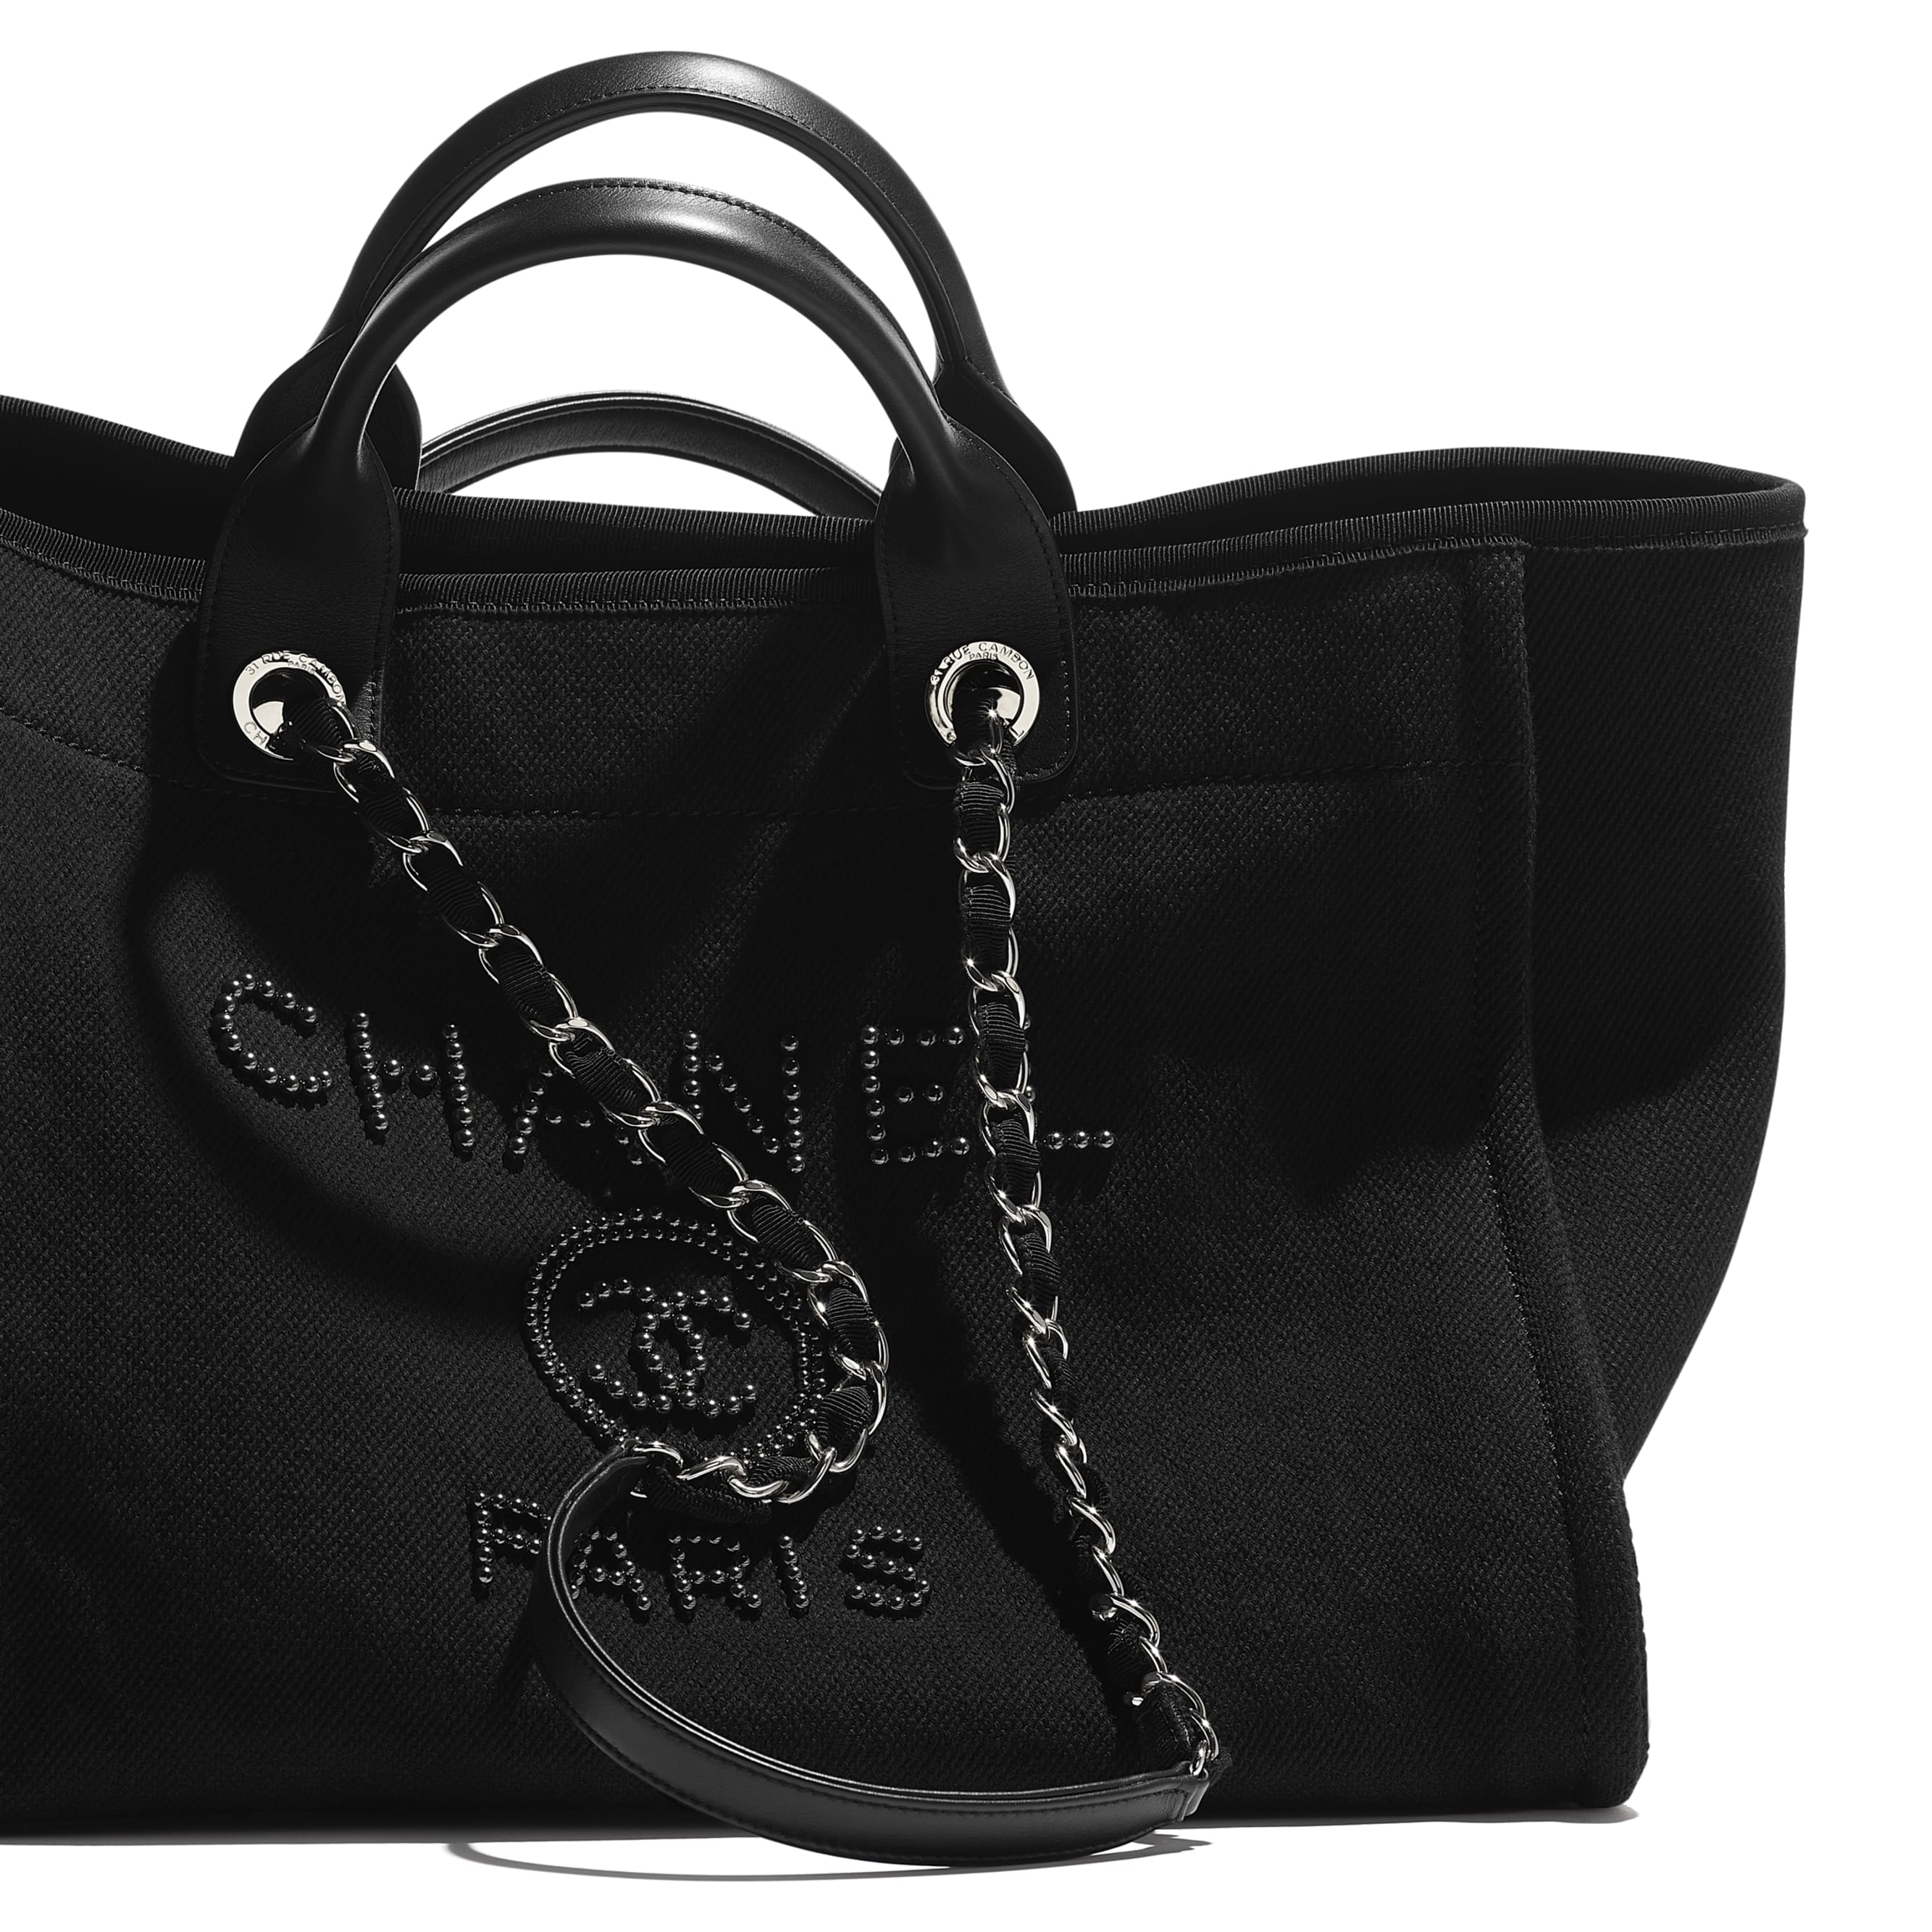 Shopping Bag - Black - Mixed Fibers, Imitation Pearls, Silver-Tone Metal - Extra view - see standard sized version